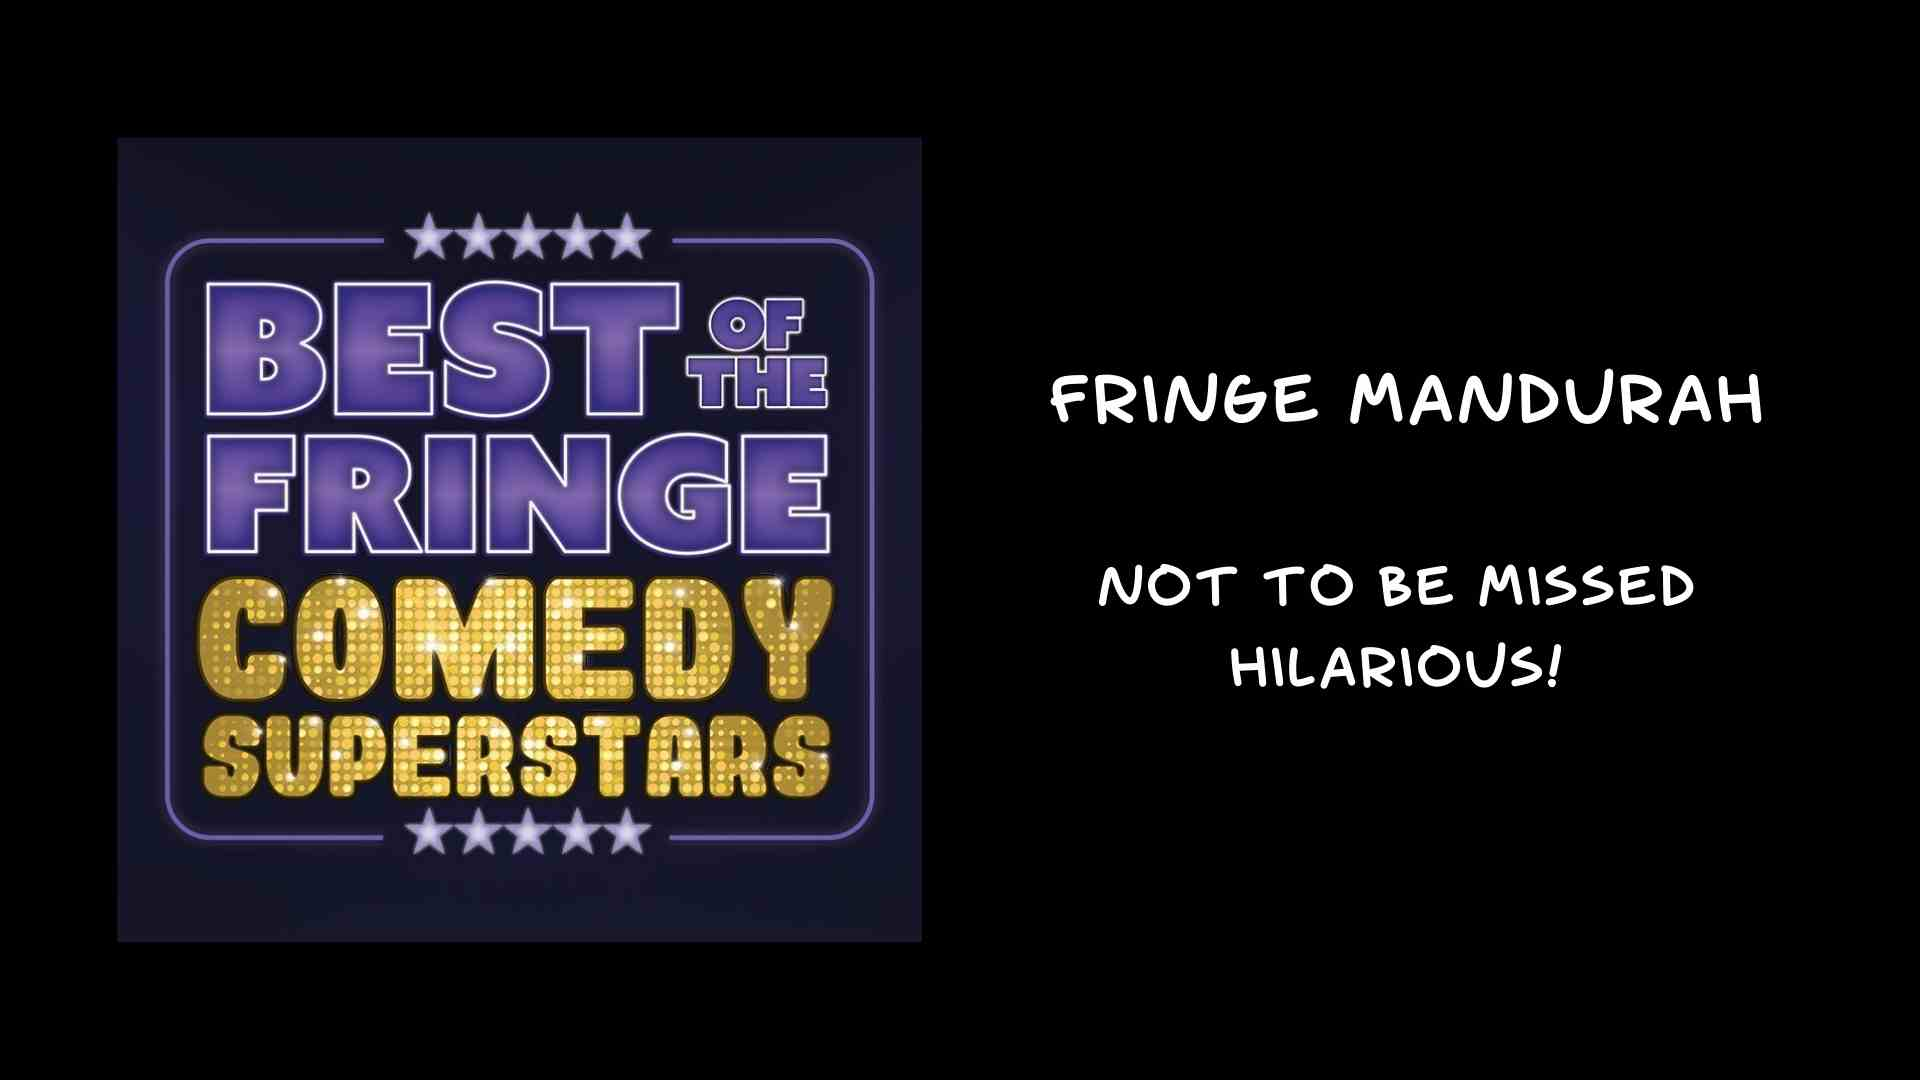 Best of Fringe Comedy at Fringe Mandurah